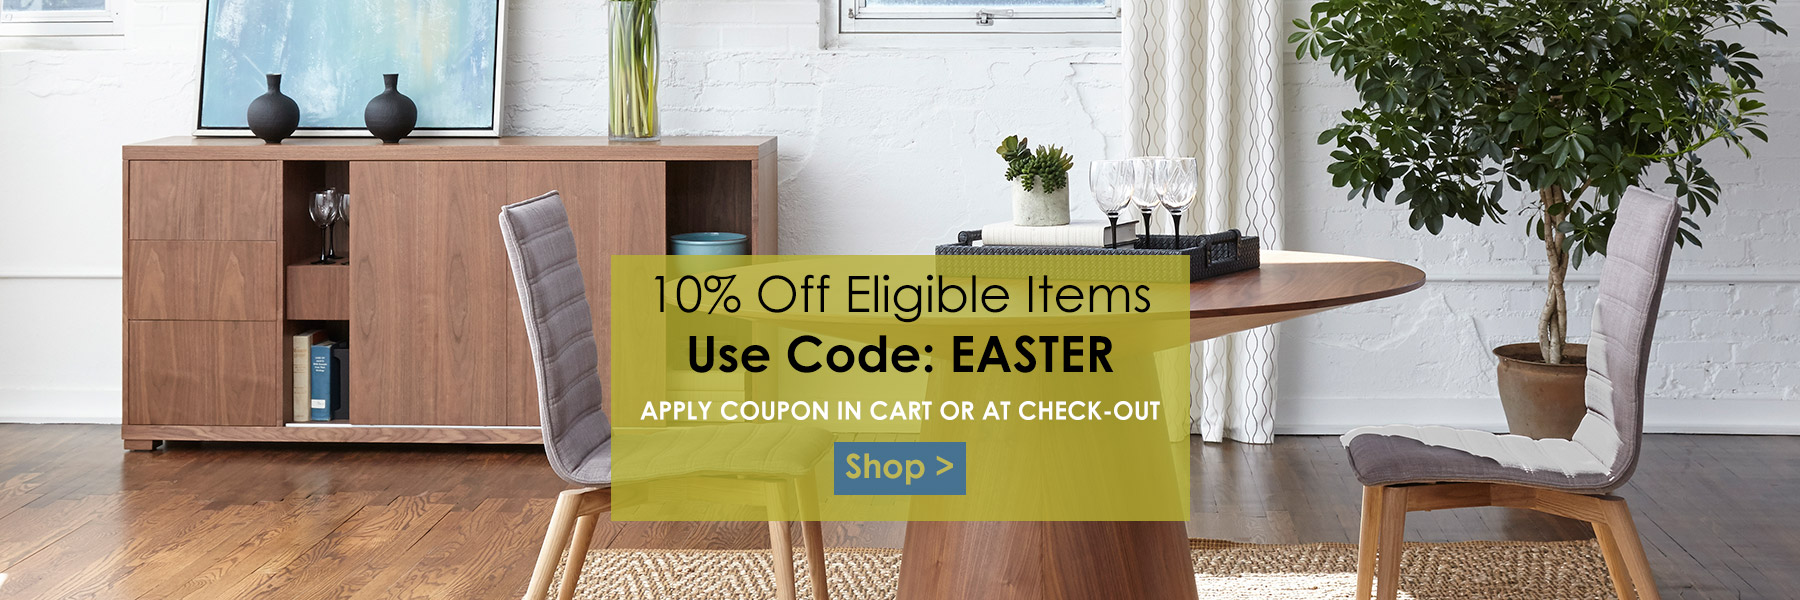 Save 10% Off All Eligible Items With Coupon Code: EASTER Through 4/21/19 | Shop >